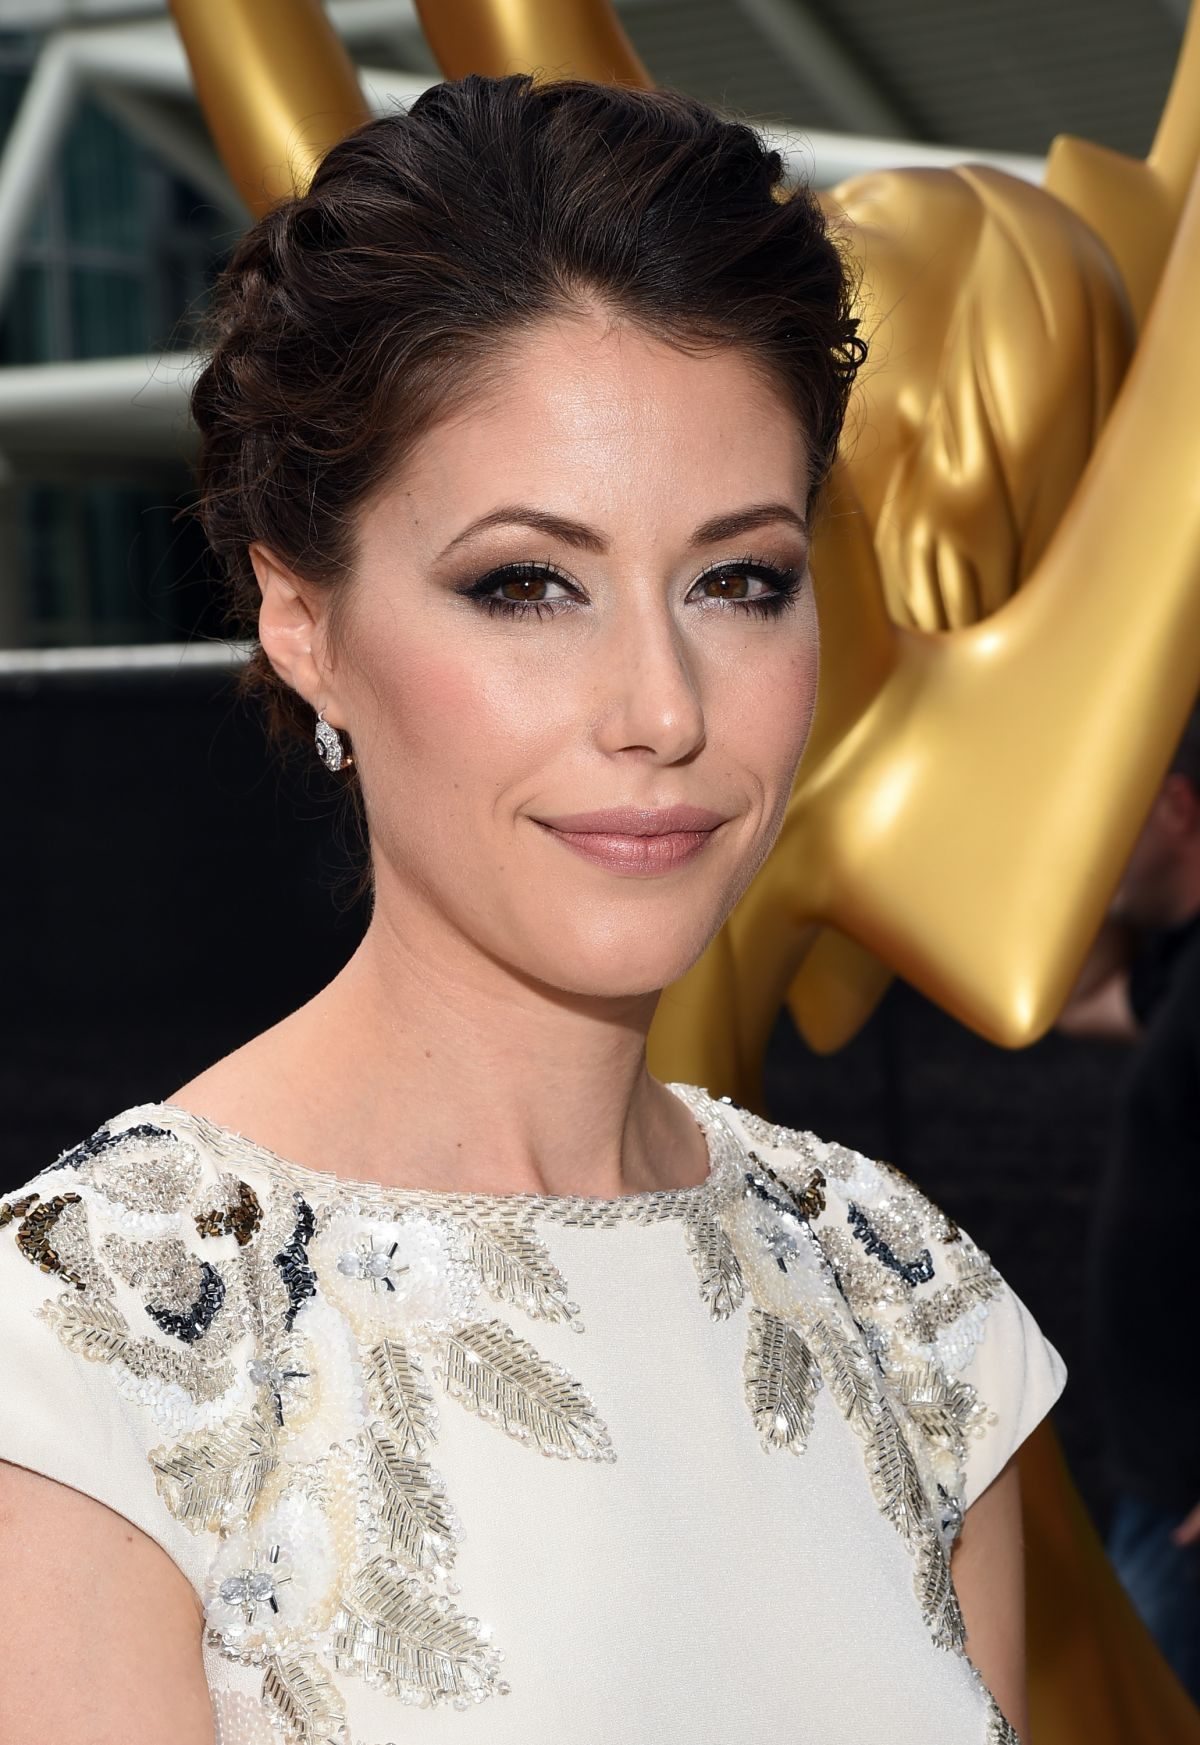 AMANDA CREW at 2014 Emmy Awards